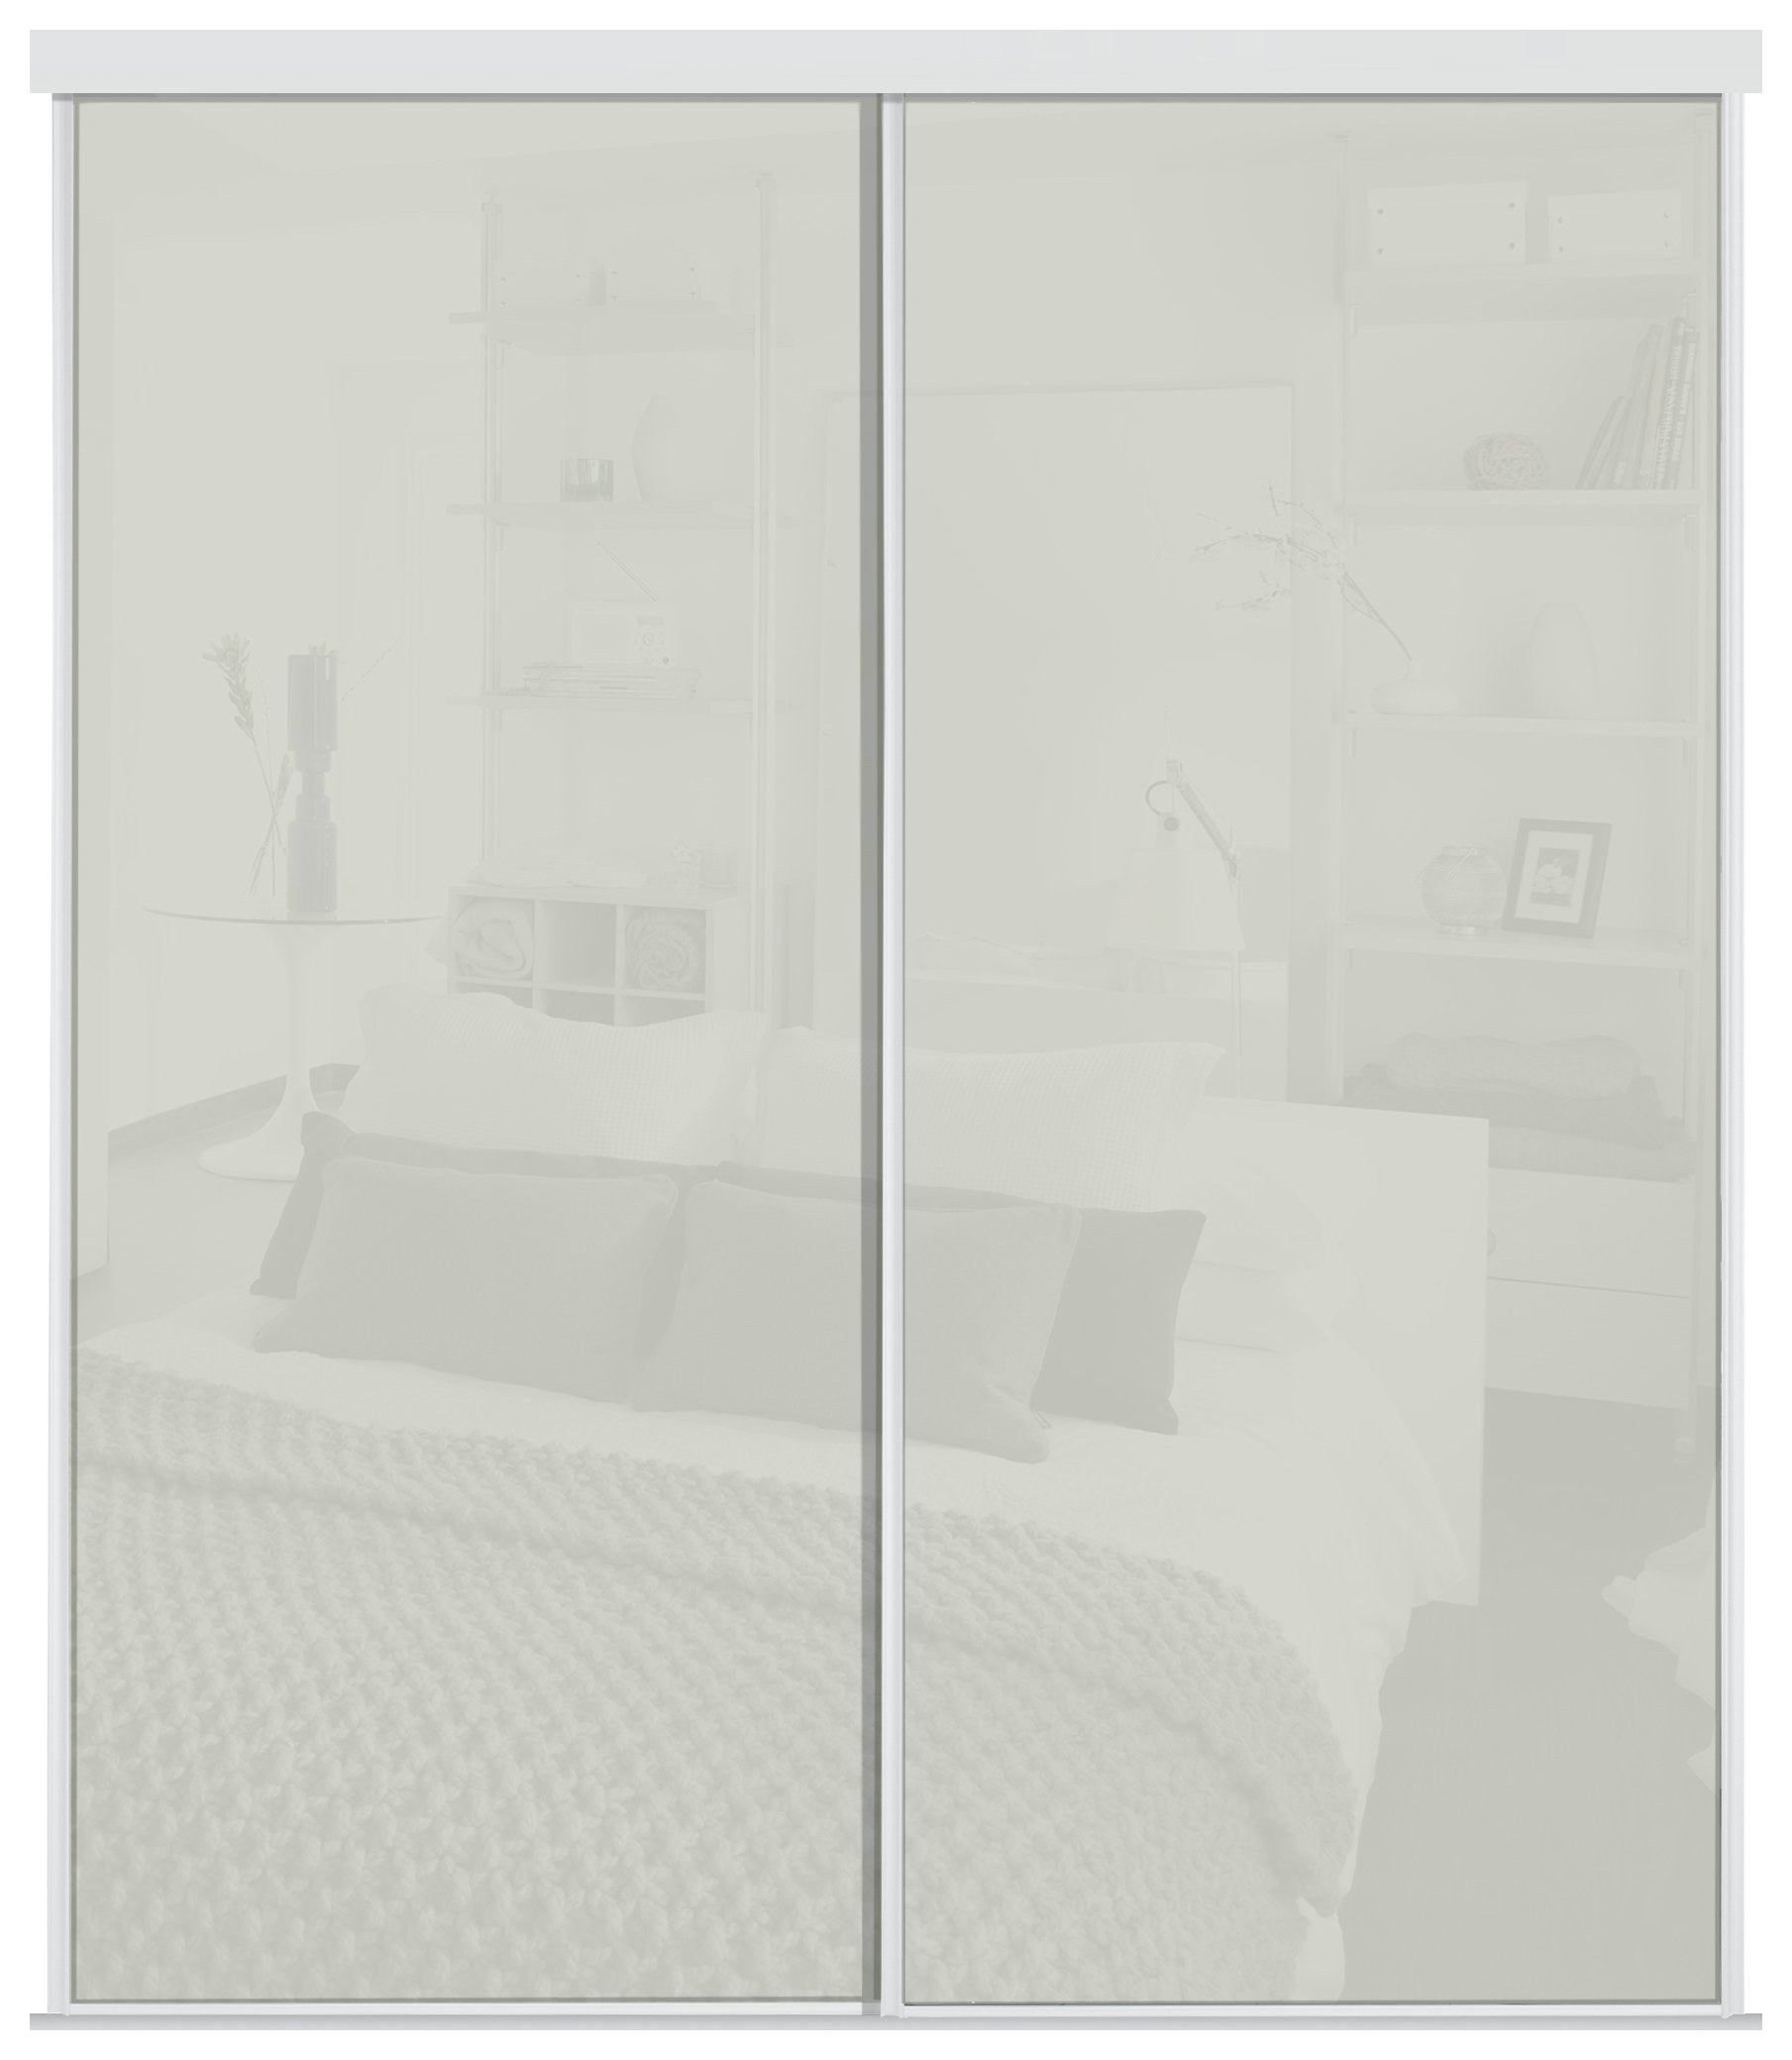 Wardrobe Kits Sale On Sliding Wardrobe Door Kit W1498mm Arctic White